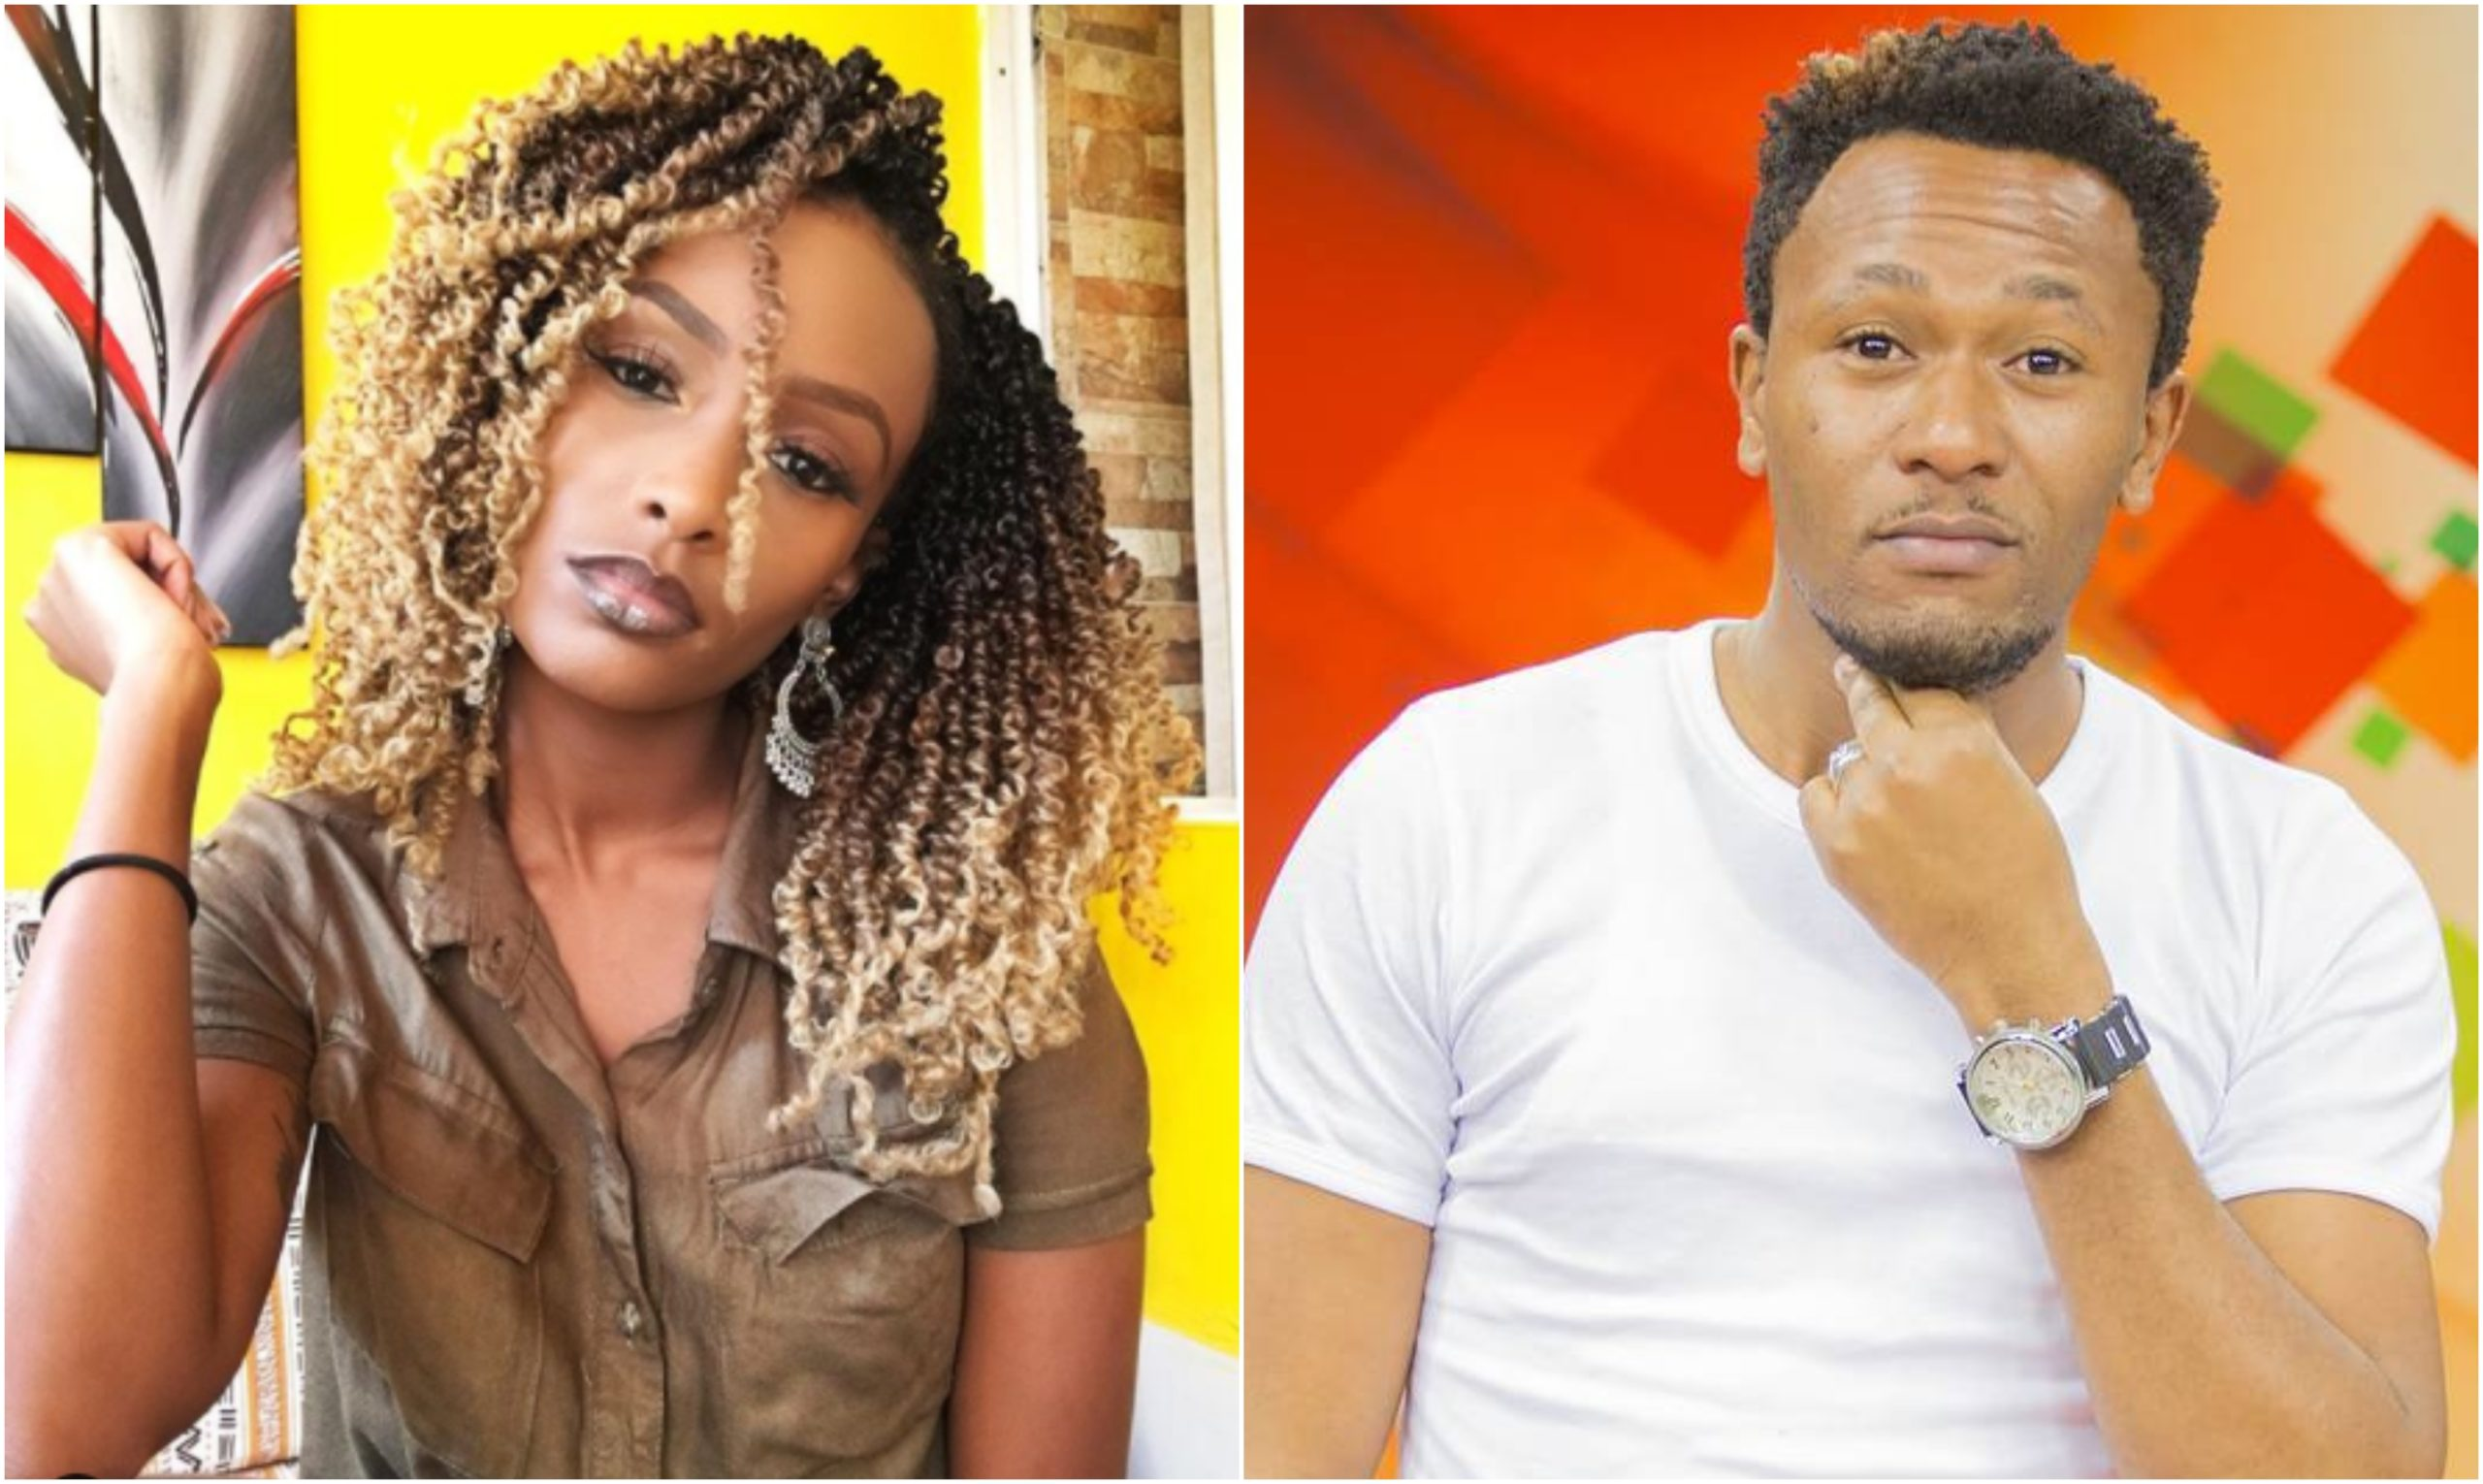 """""""I don't like lightskin men,"""" DJ Mo's alleged side chick claps back in angry rant (Video)"""